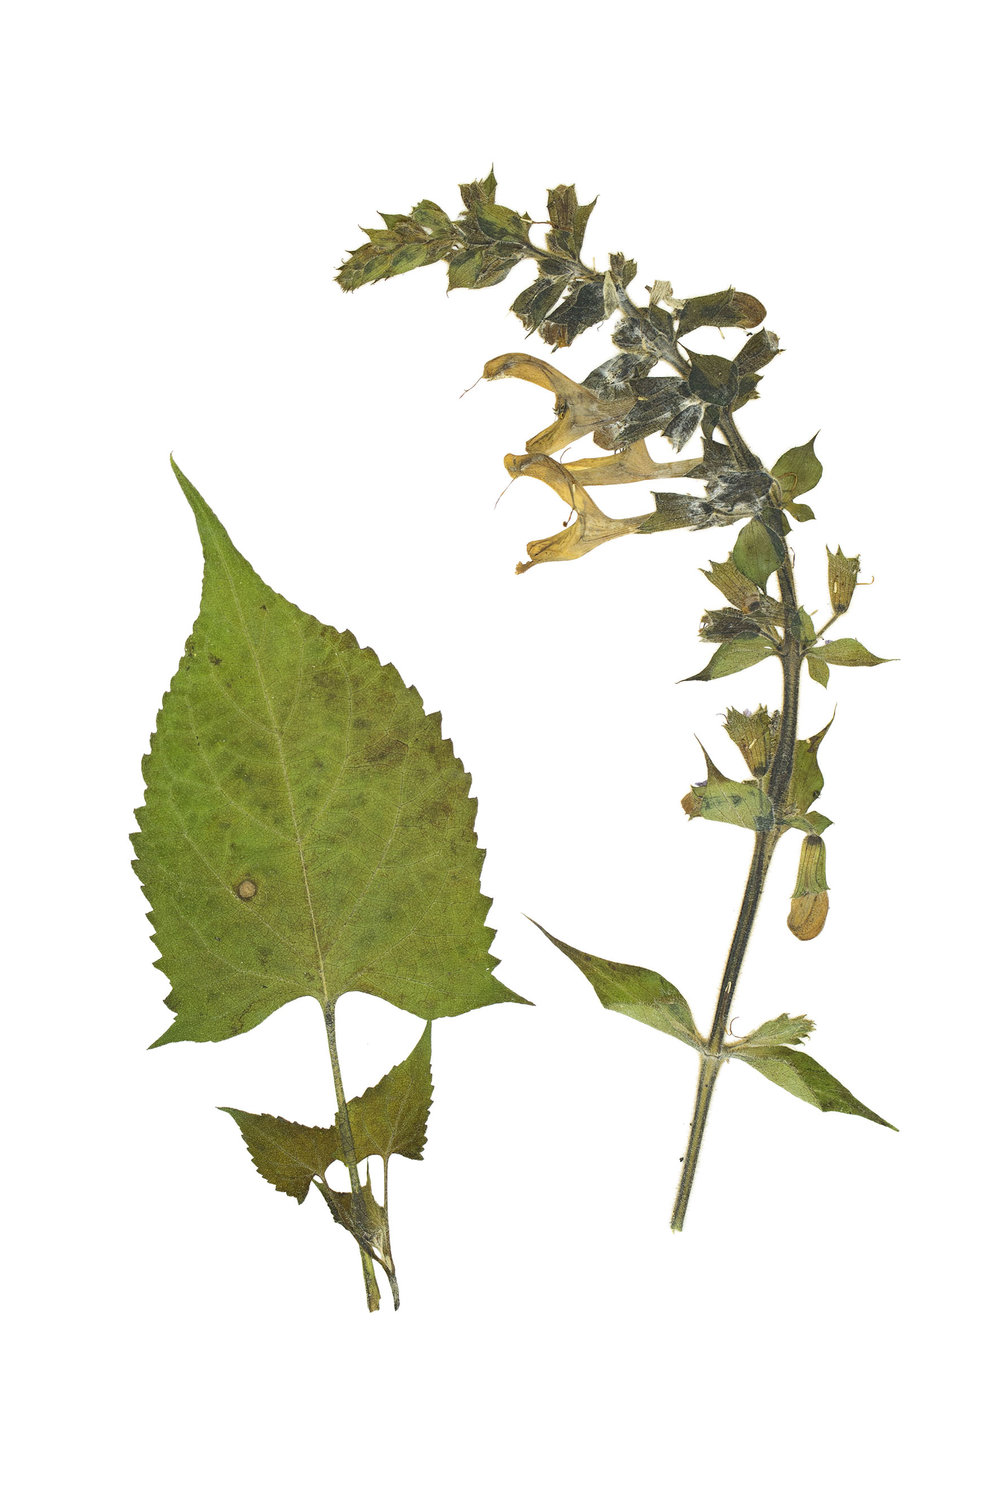 New! Sticky Sage / Salvia glutinosa